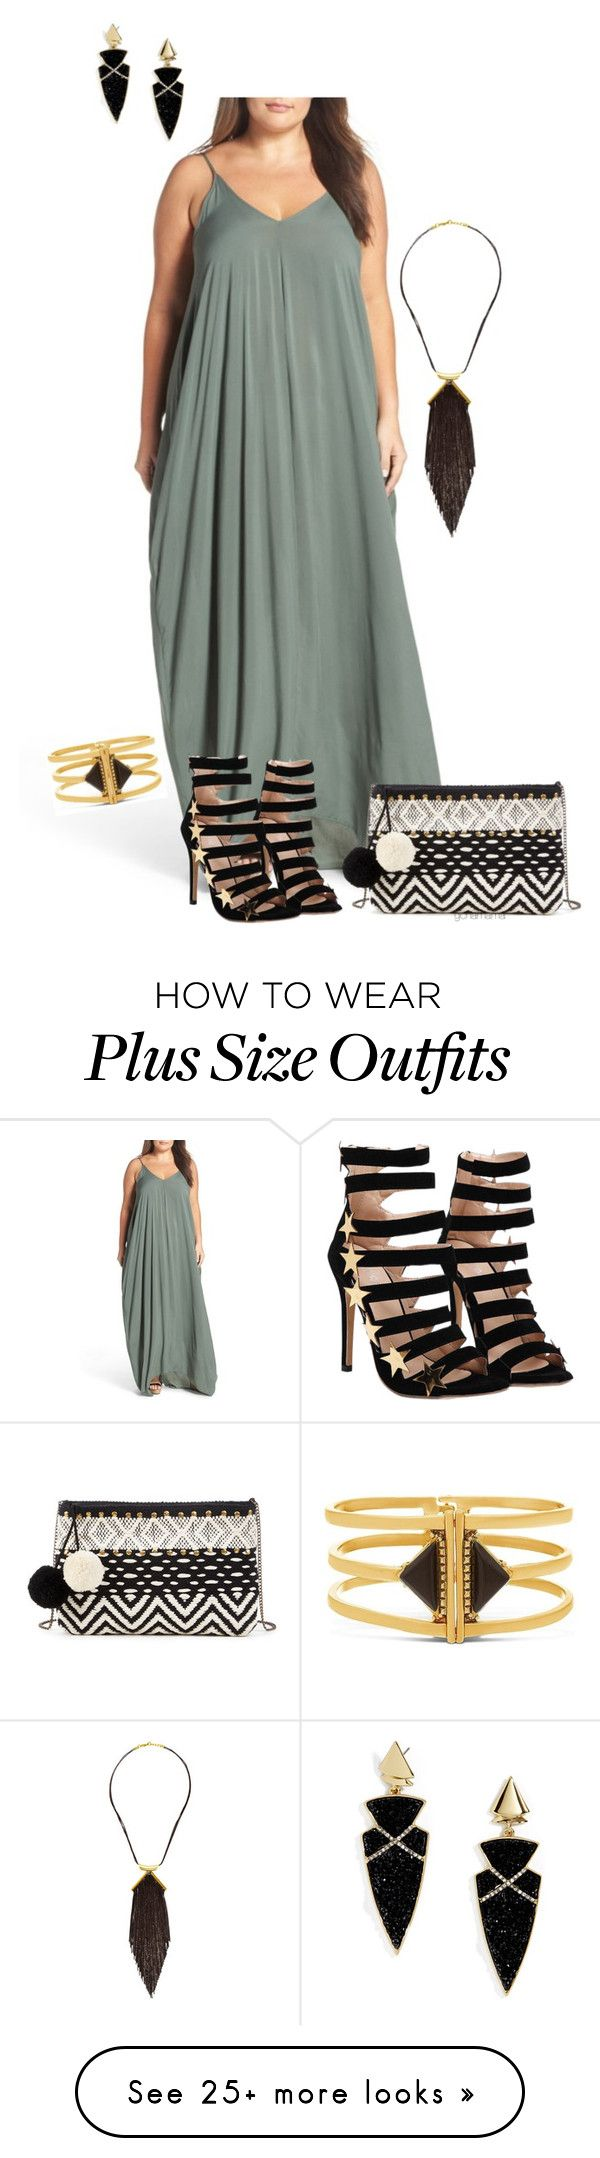 """""""I love summer- plus size"""" by gchamama on Polyvore featuring ELAN, Steve Madden, Sole Society, BaubleBar and plus size clothing"""